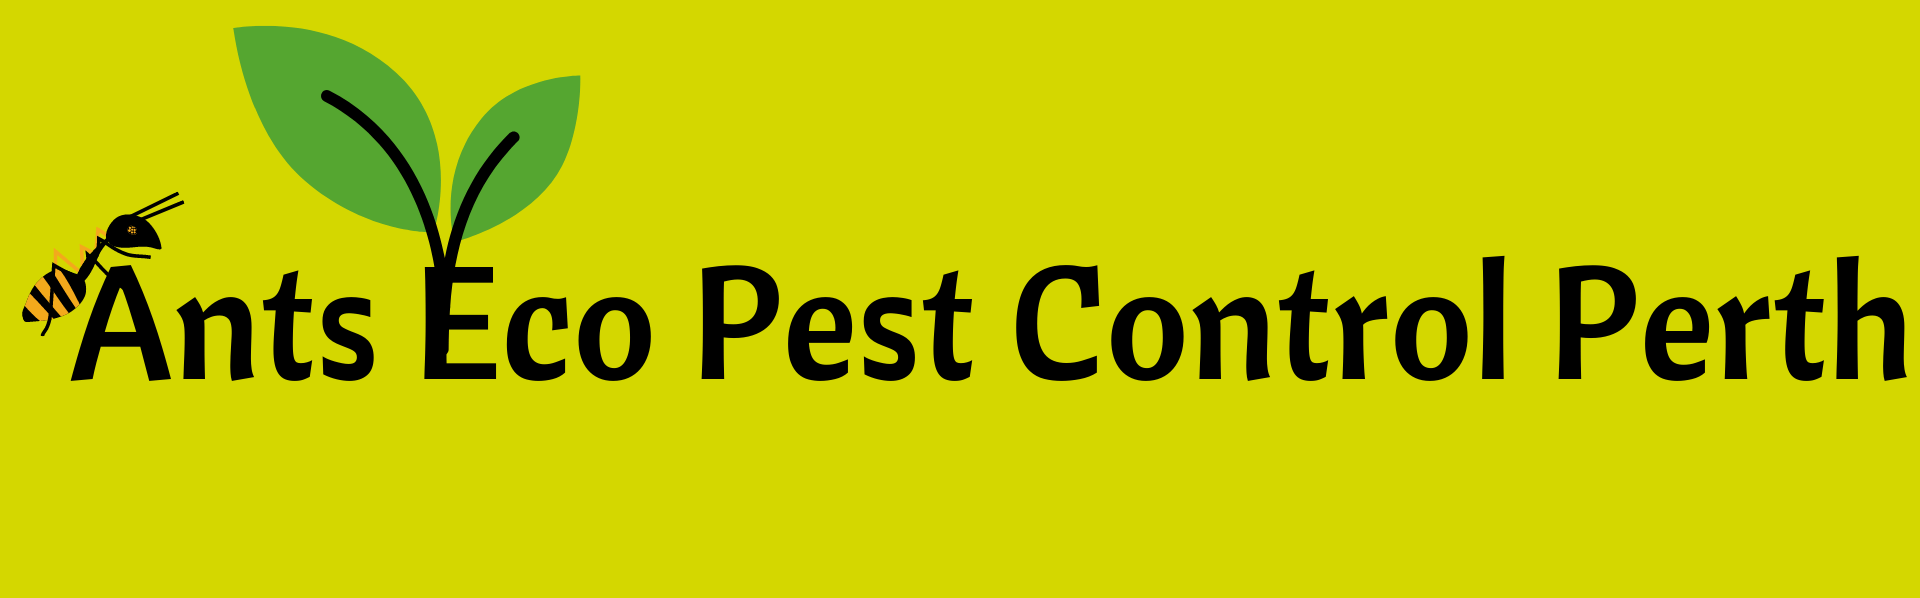 Ants Eco Pest Control Perth